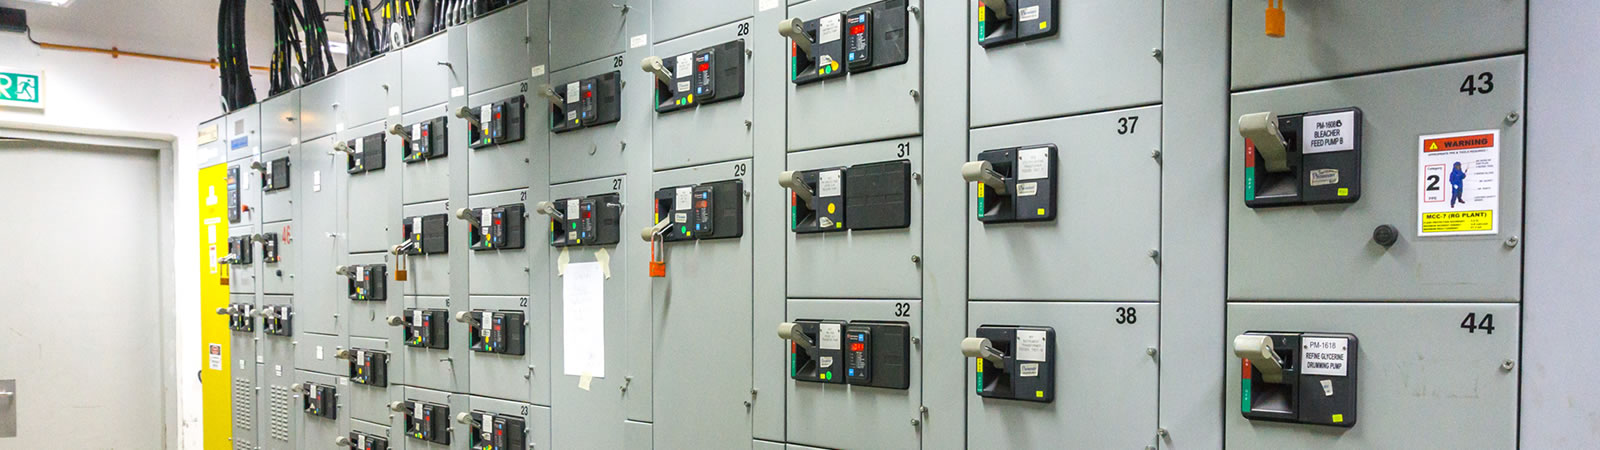 Protection, Industrial & Explosion Proof Control Equipment